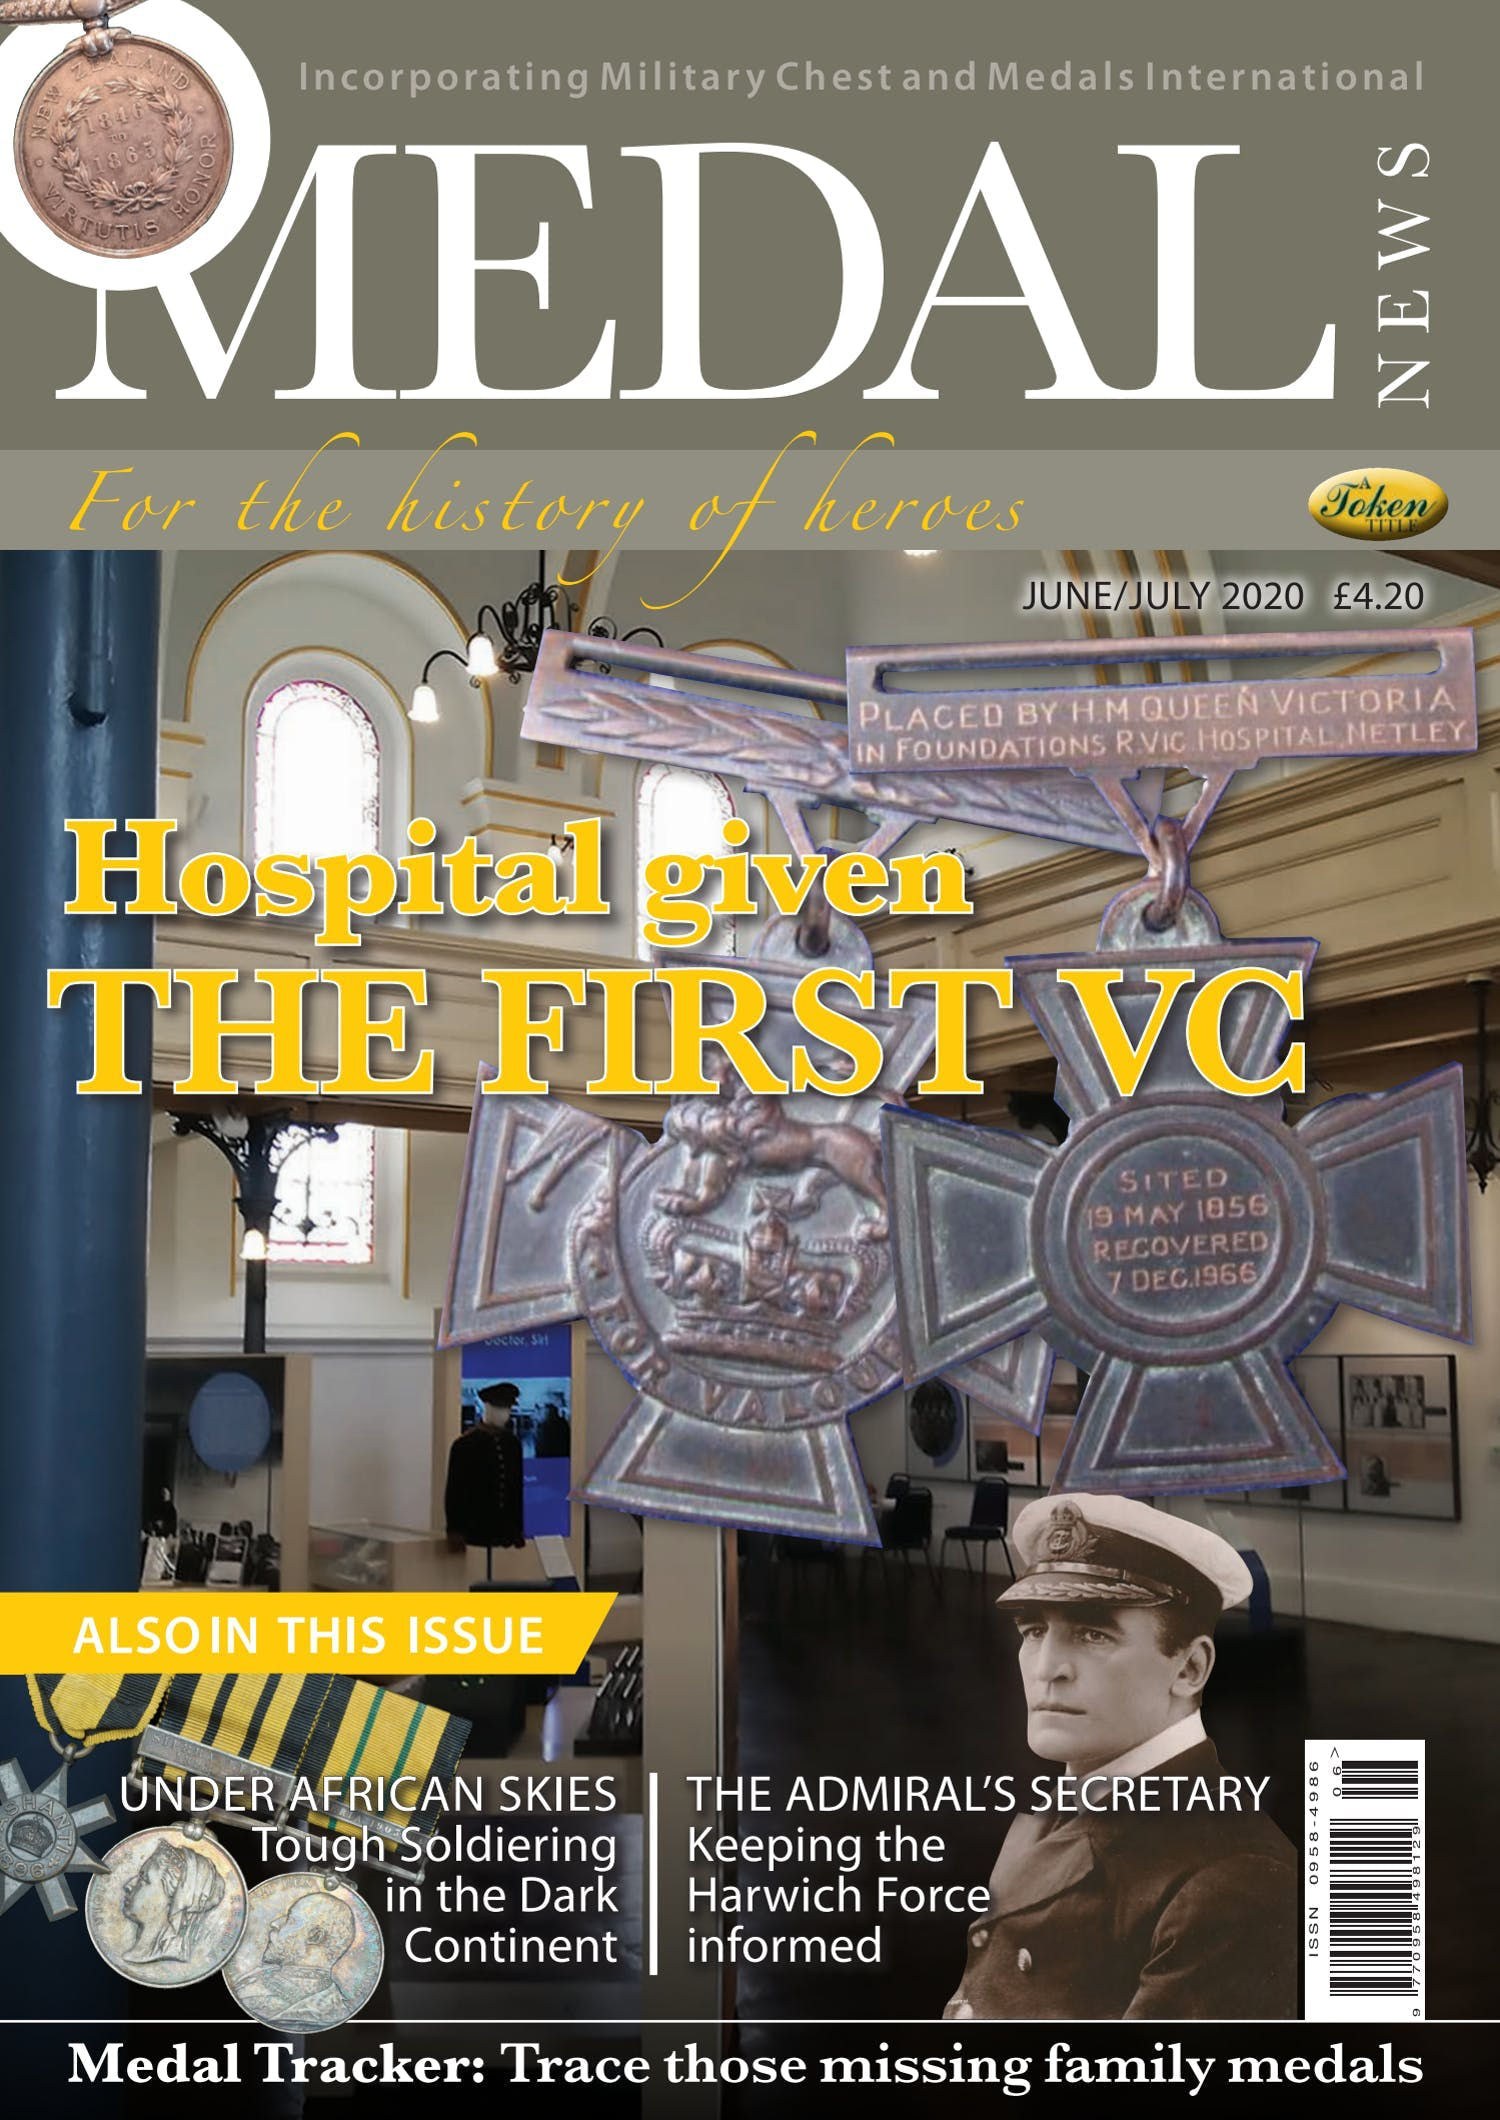 The front cover of Medal News, Volume 58, Number 6, June 2020